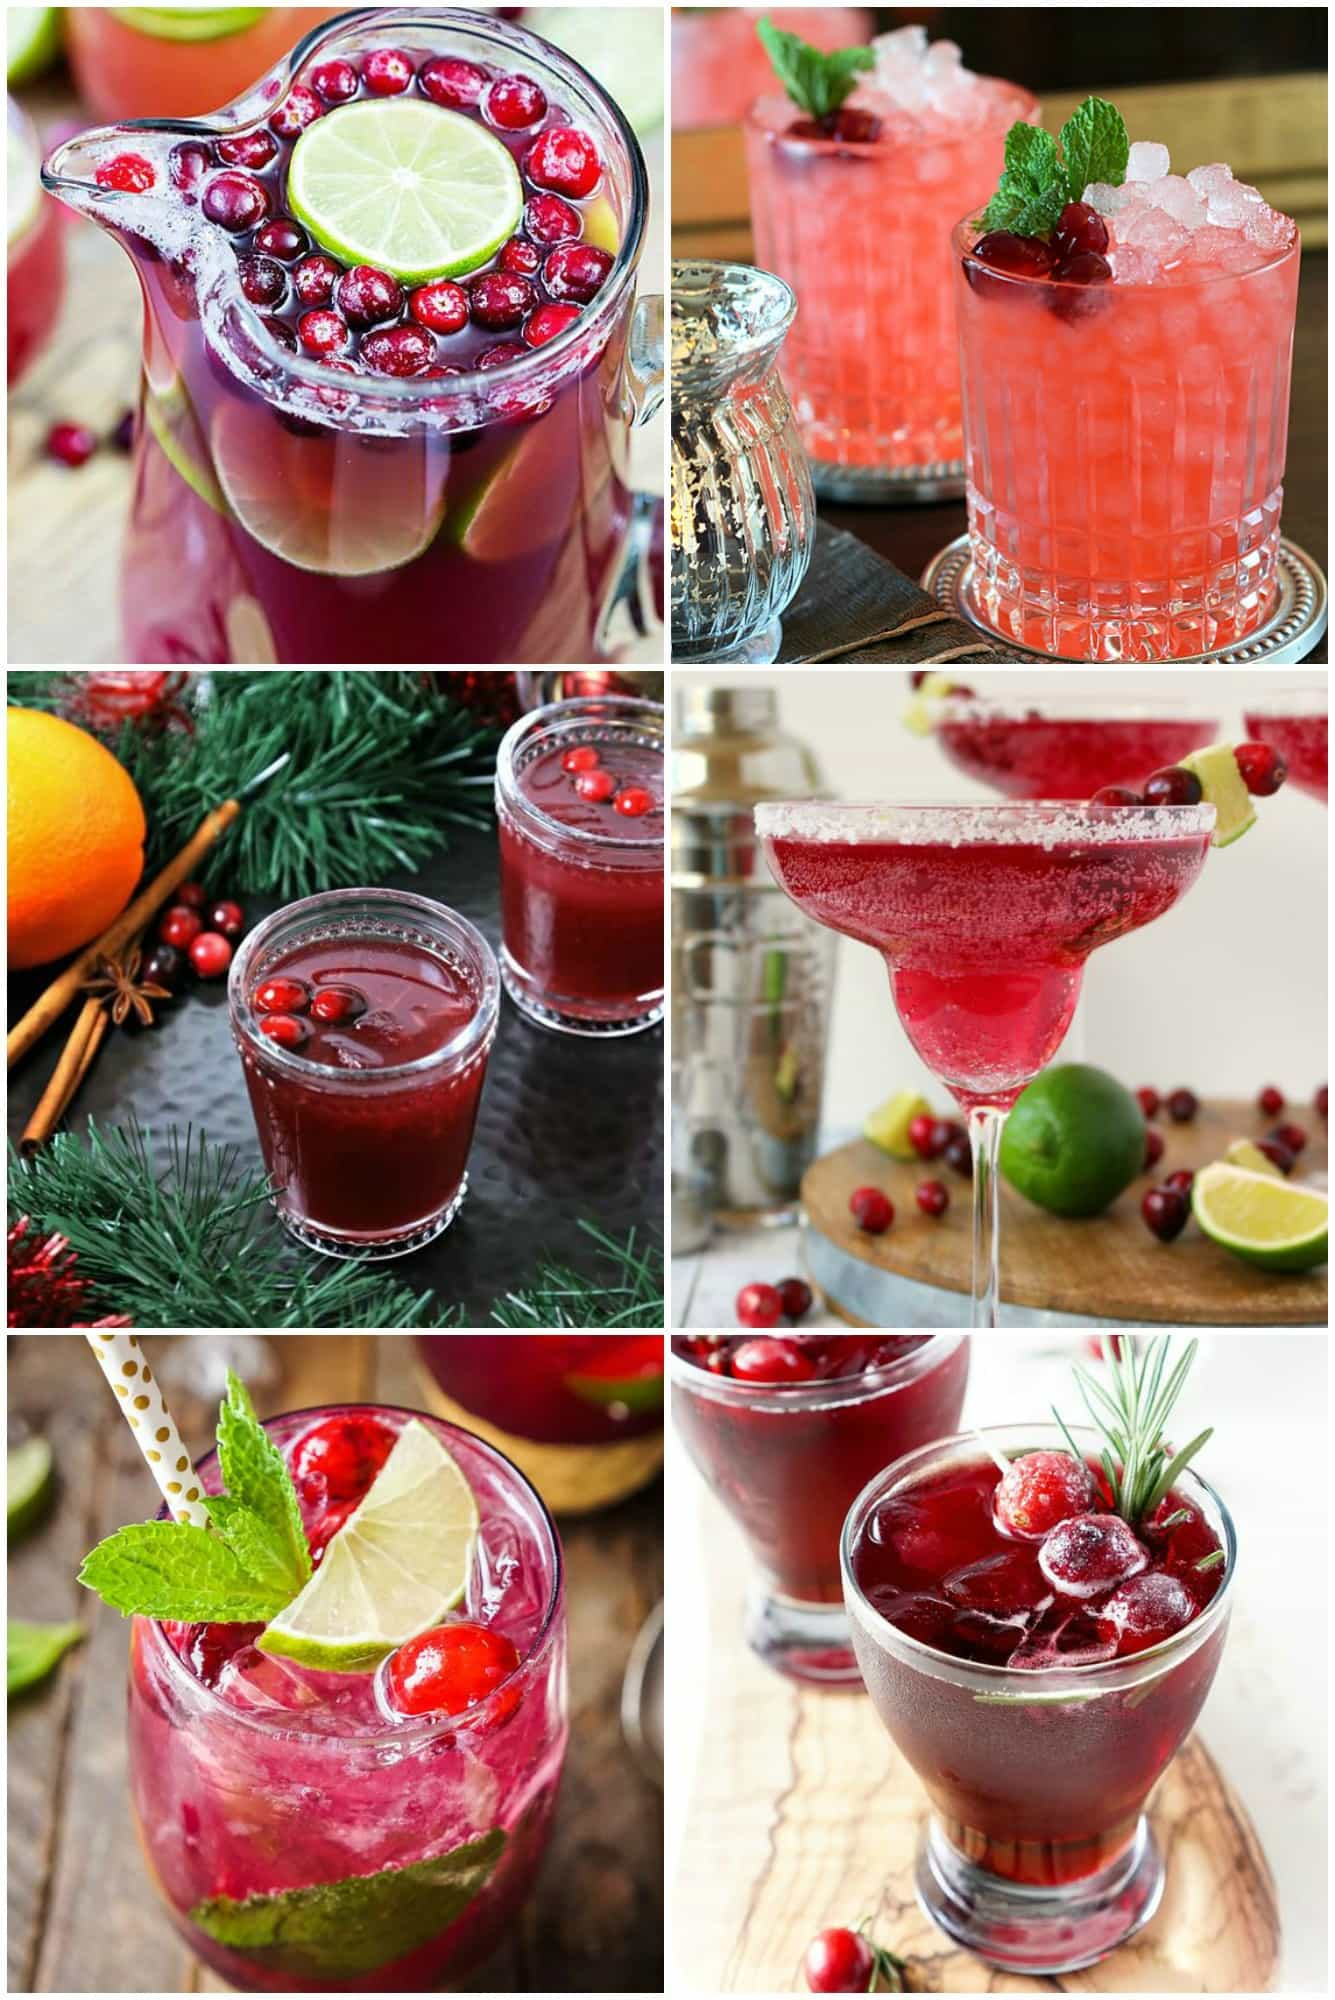 25 Cranberry Cocktails for Your Holiday Party ⋆ Real Housemoms